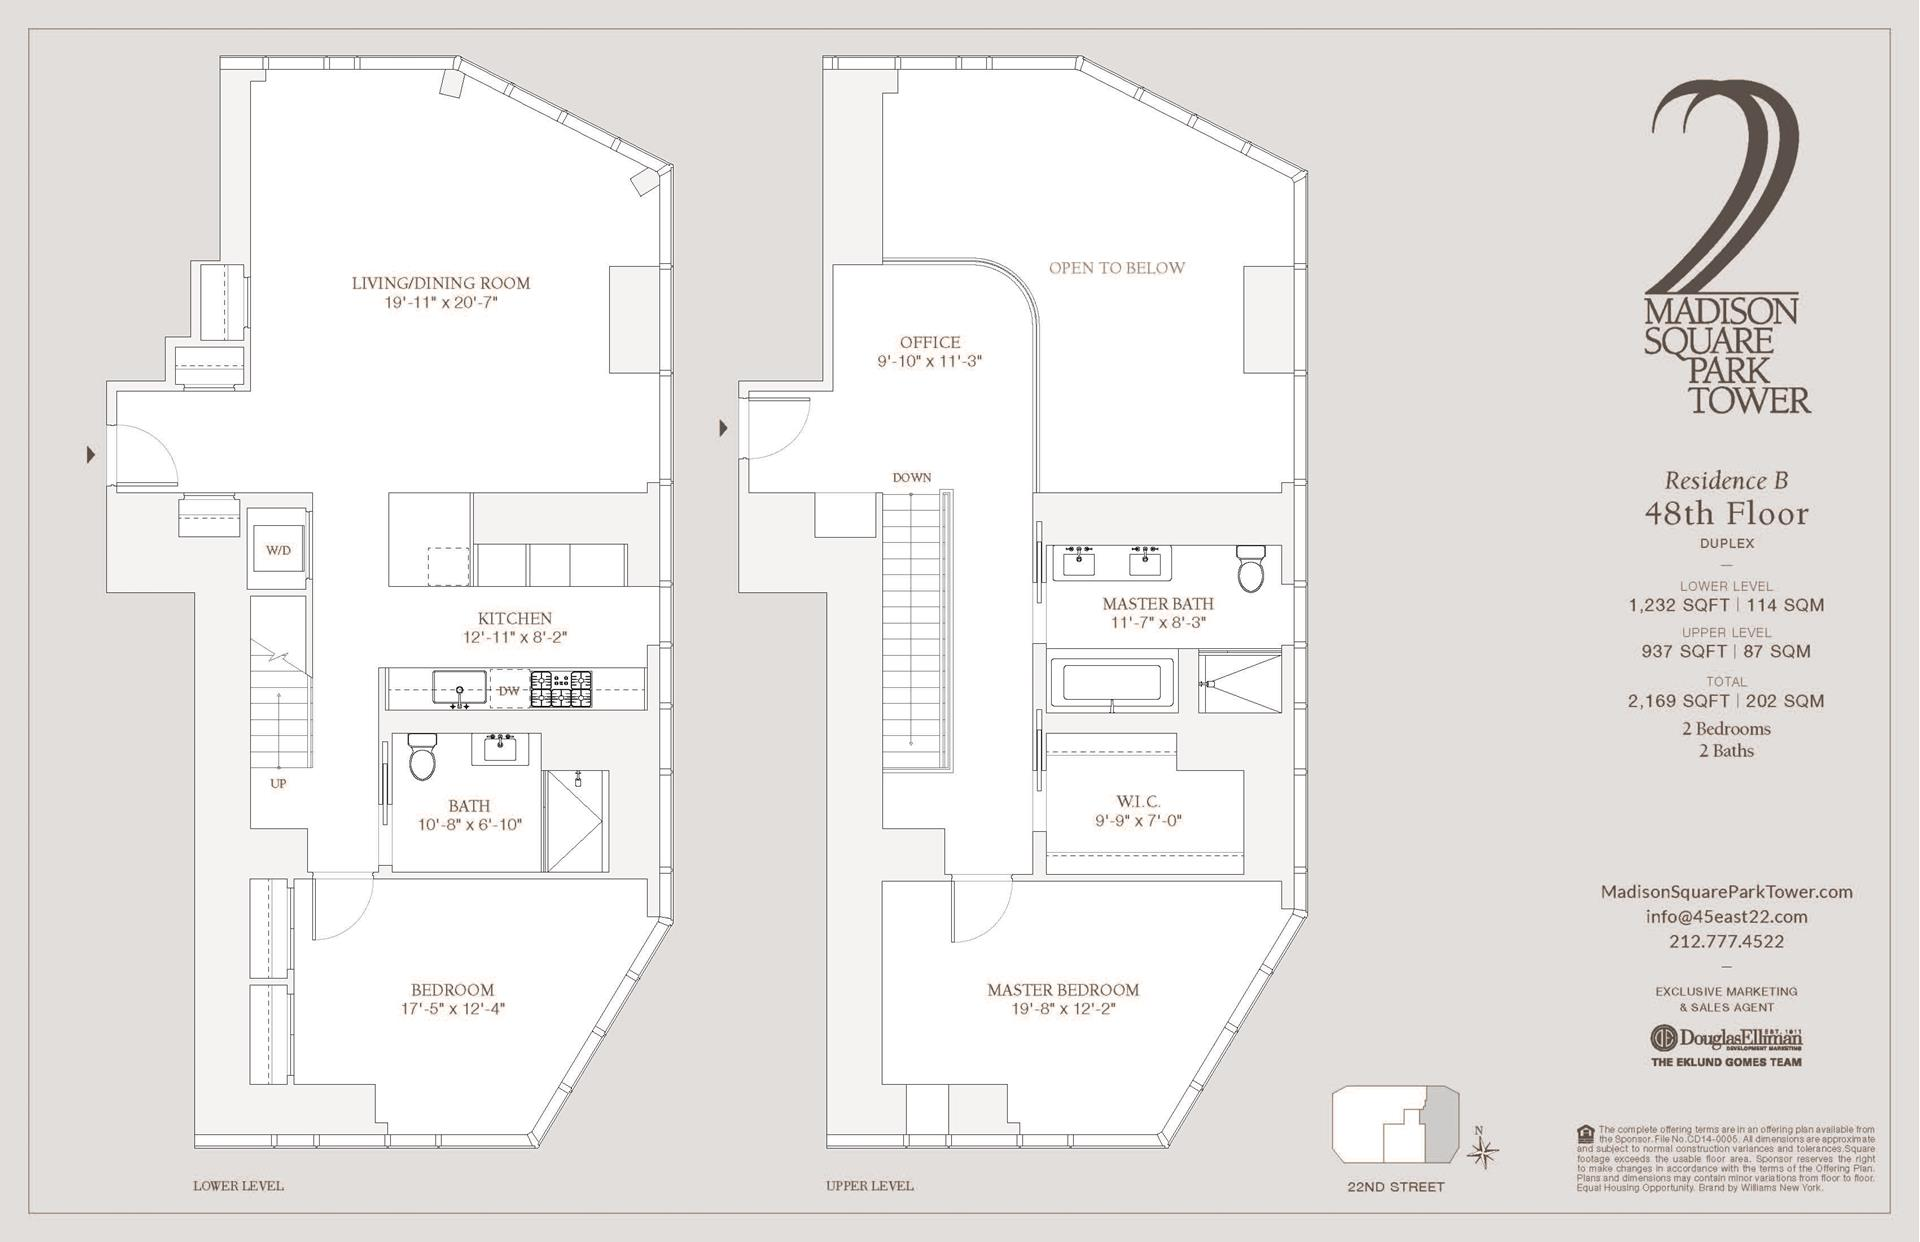 Floor plan of Madison Square Park Tower, 45 East 22nd St, 48B - Flatiron District, New York